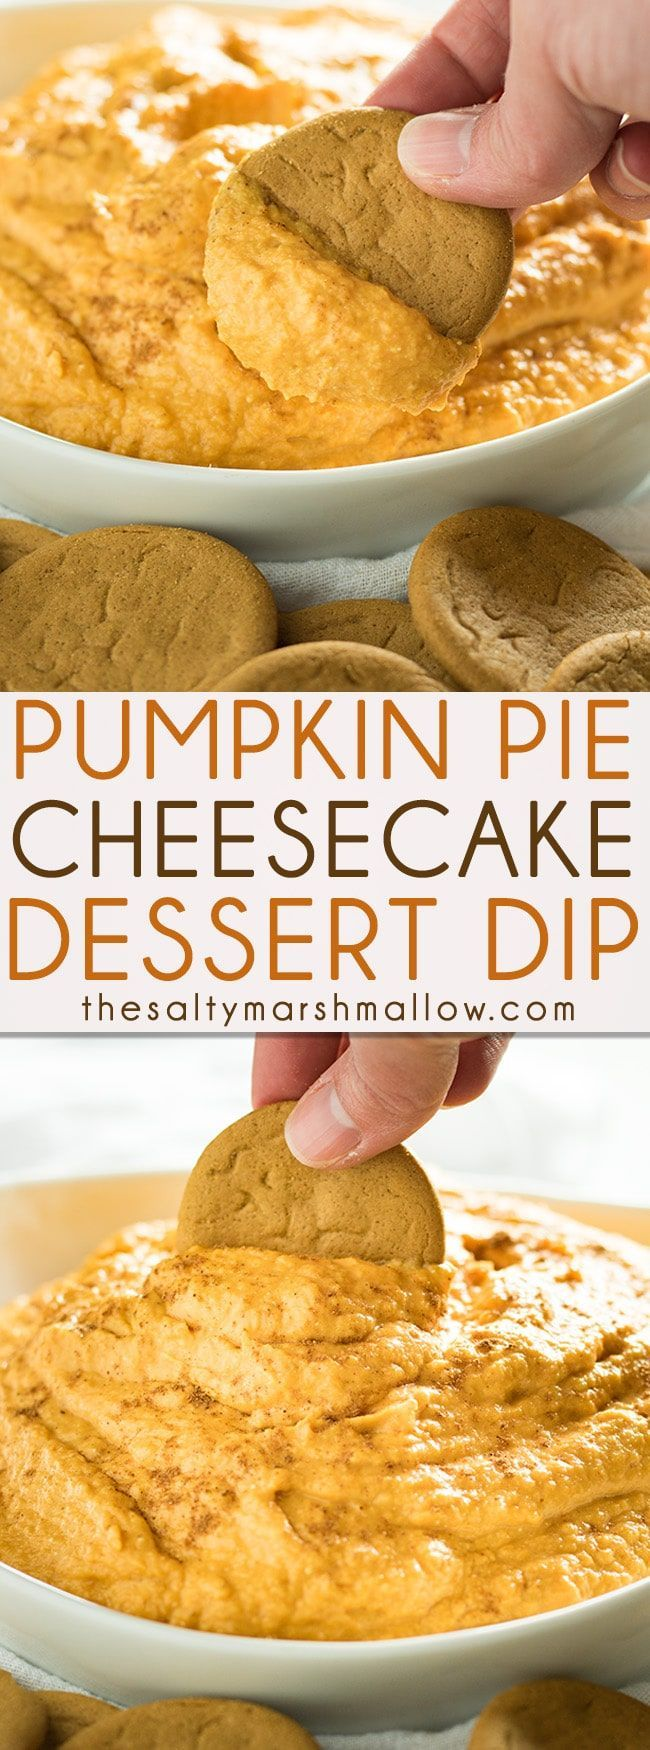 This Pumpkin Pie Cheesecake Dip is easy to make with only five ingredients. Cool whip free, this dip if full of cream cheese and pumpkin flavor! My favorite pumpkin dip recipe, this is great served with ginger snaps, vanilla wafers or fruit. Always a hit at any fall and holiday party or game day get together.